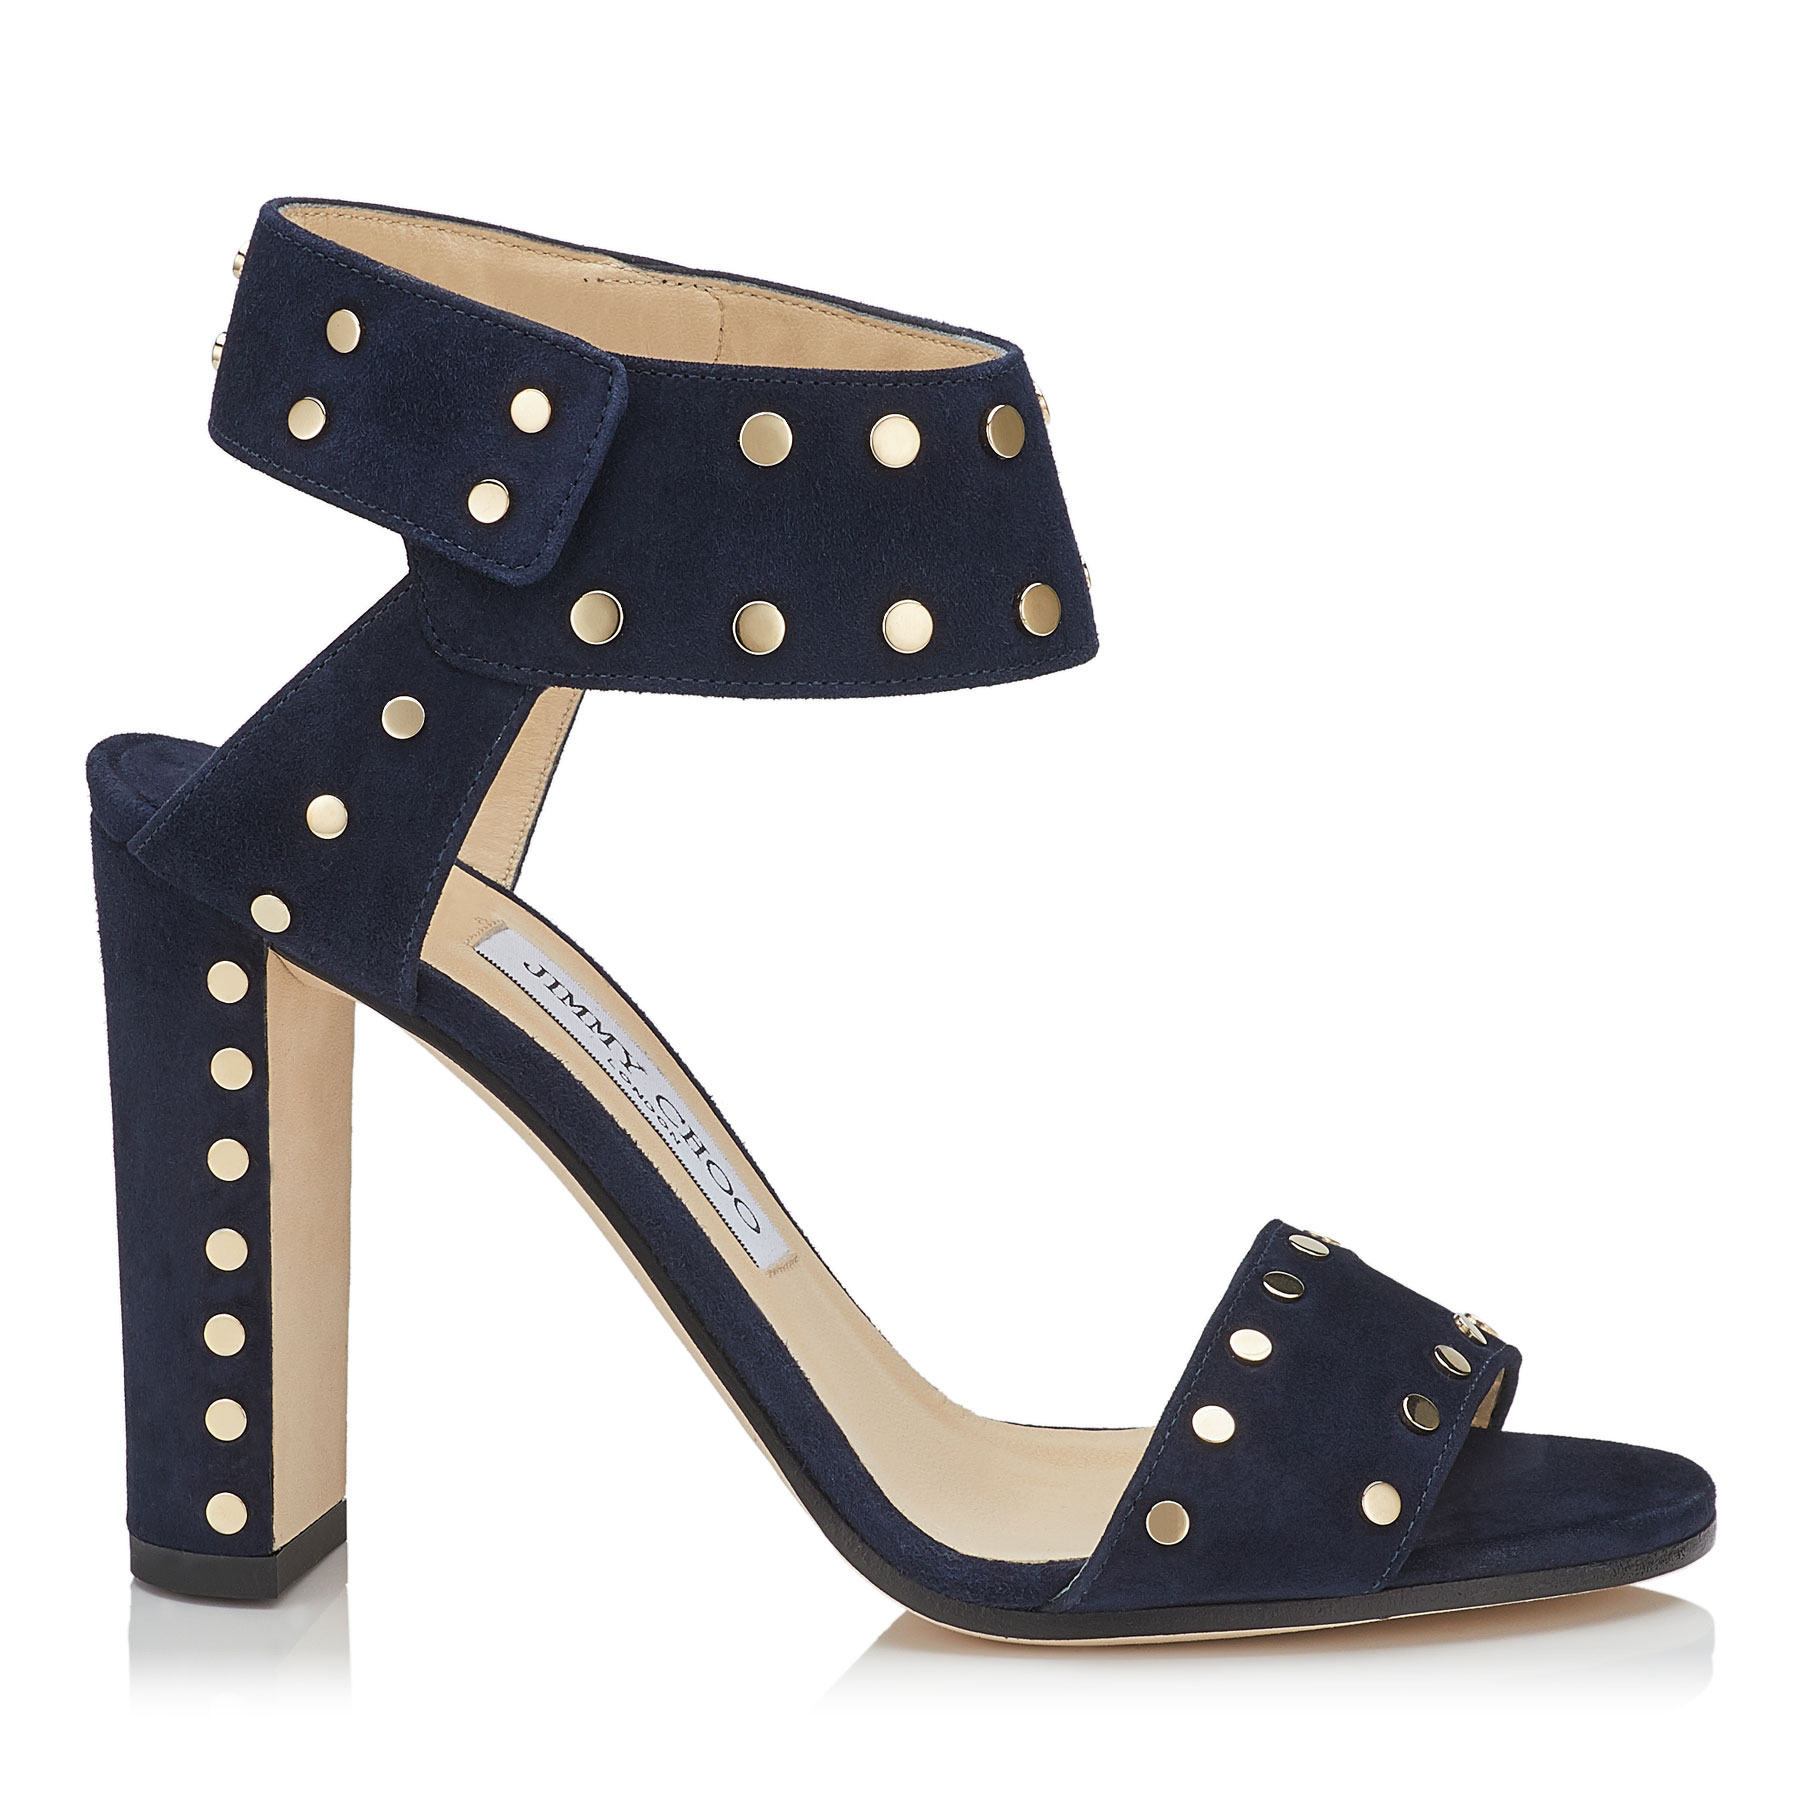 VETO 100 Navy Suede Sandals with Gold Studs